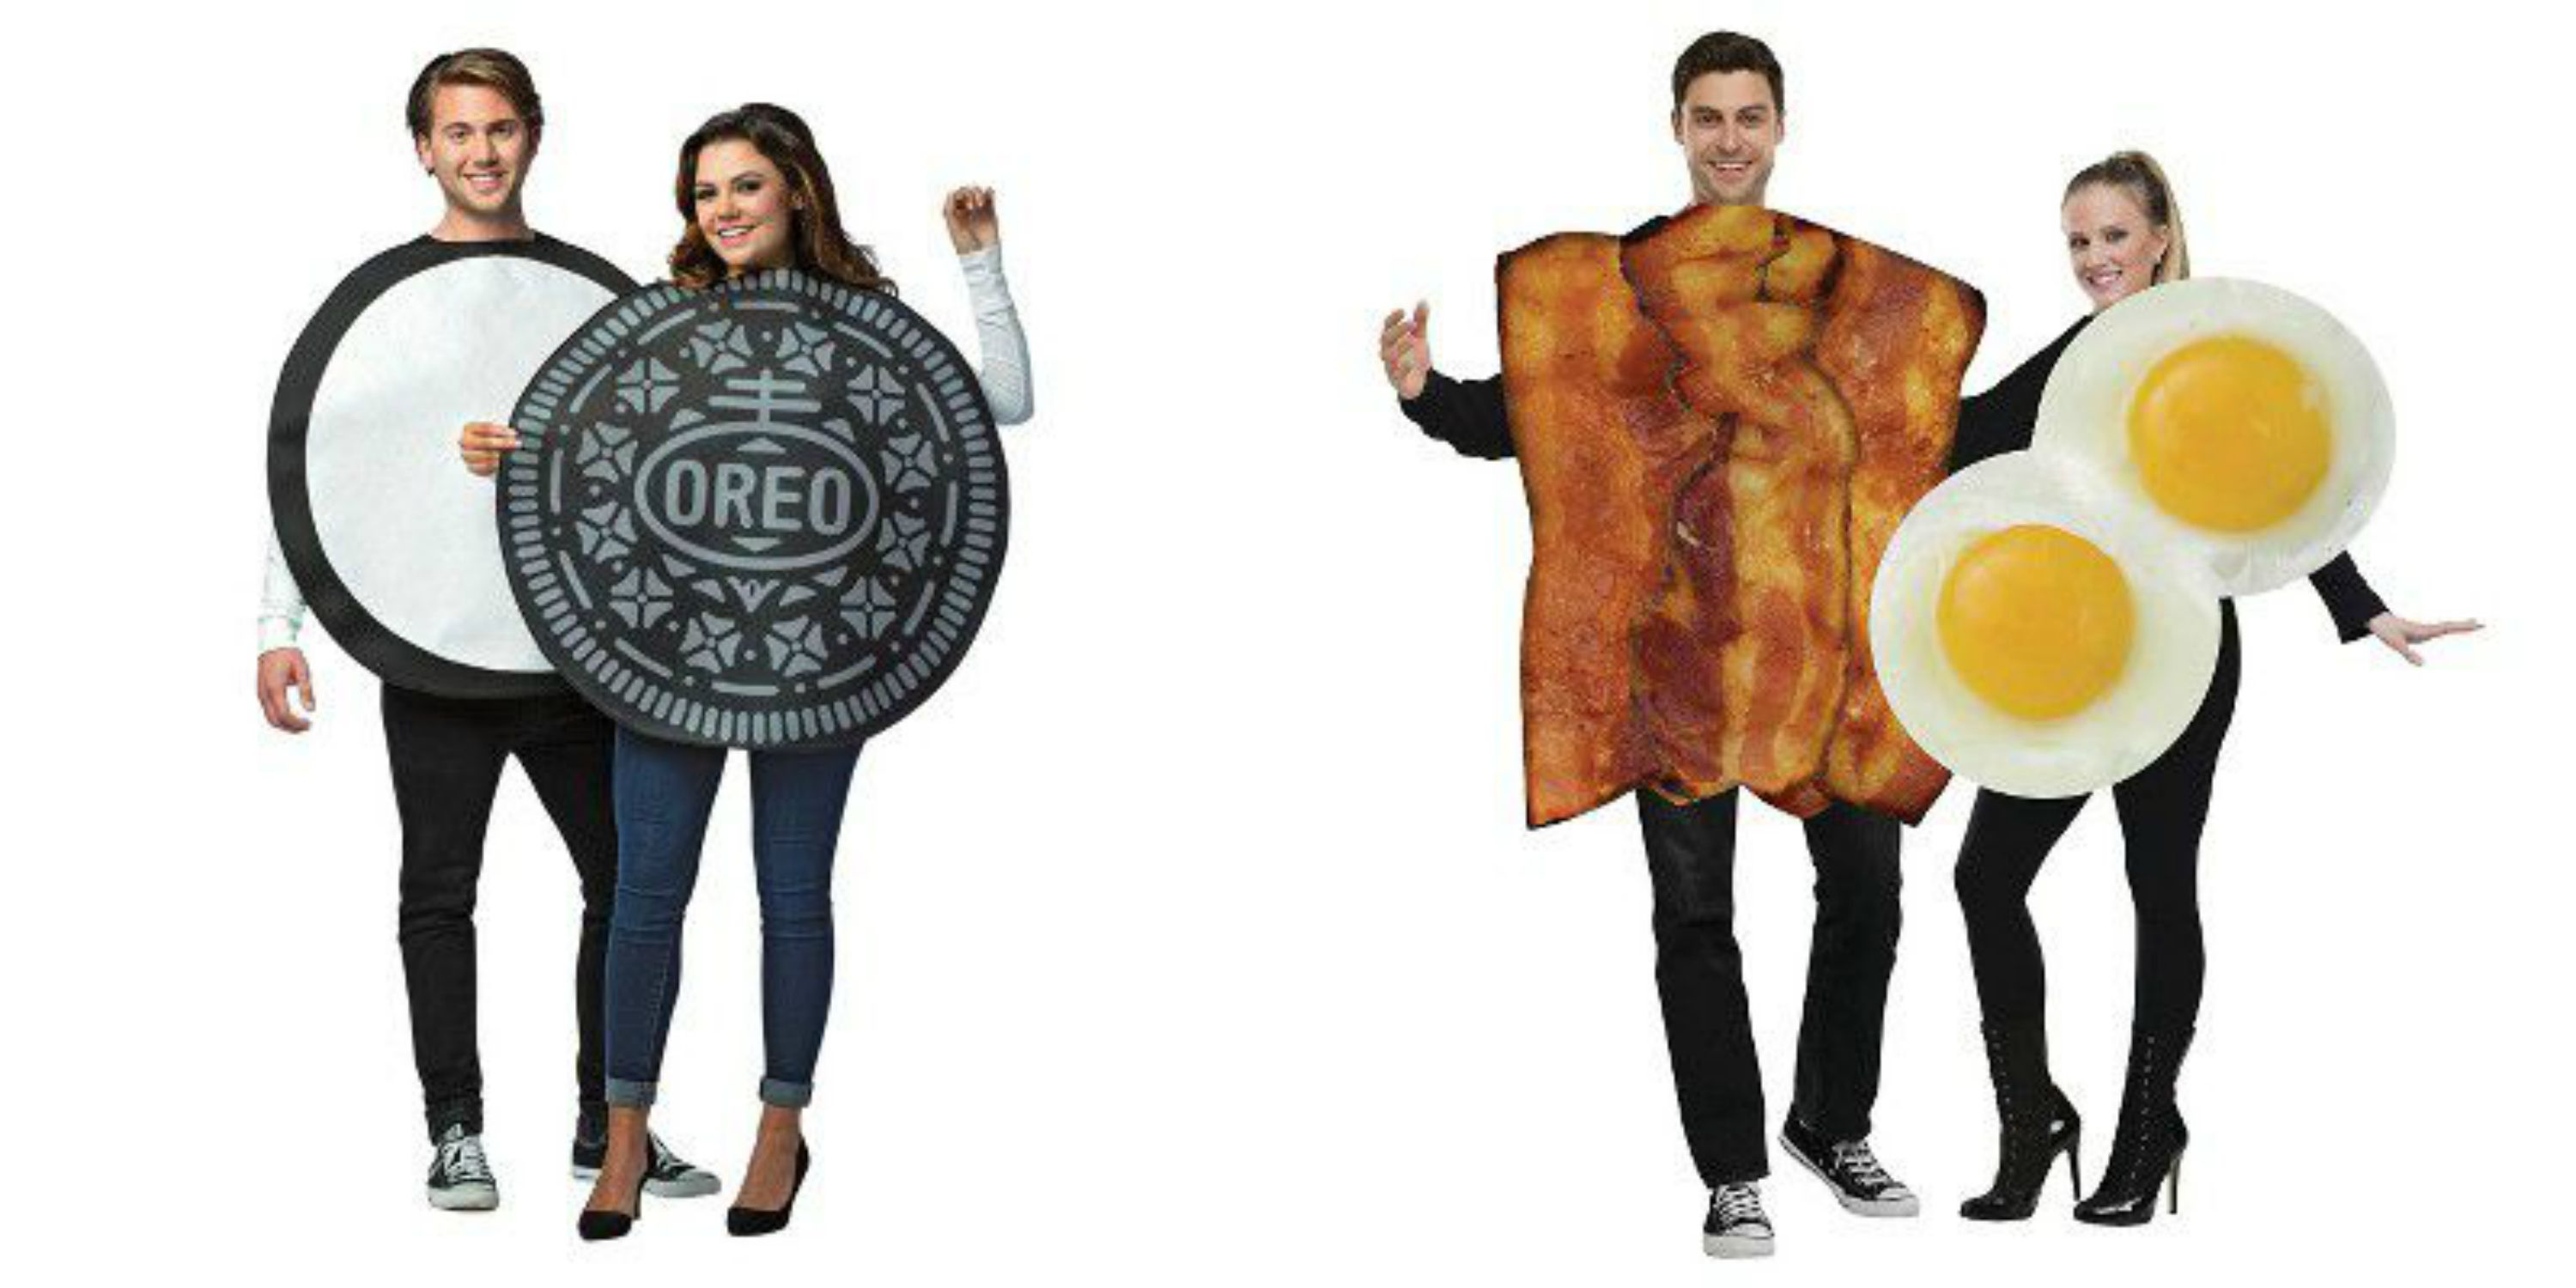 Target Is Selling Hilarious Food-Inspired Couple And Family Halloween Costumes